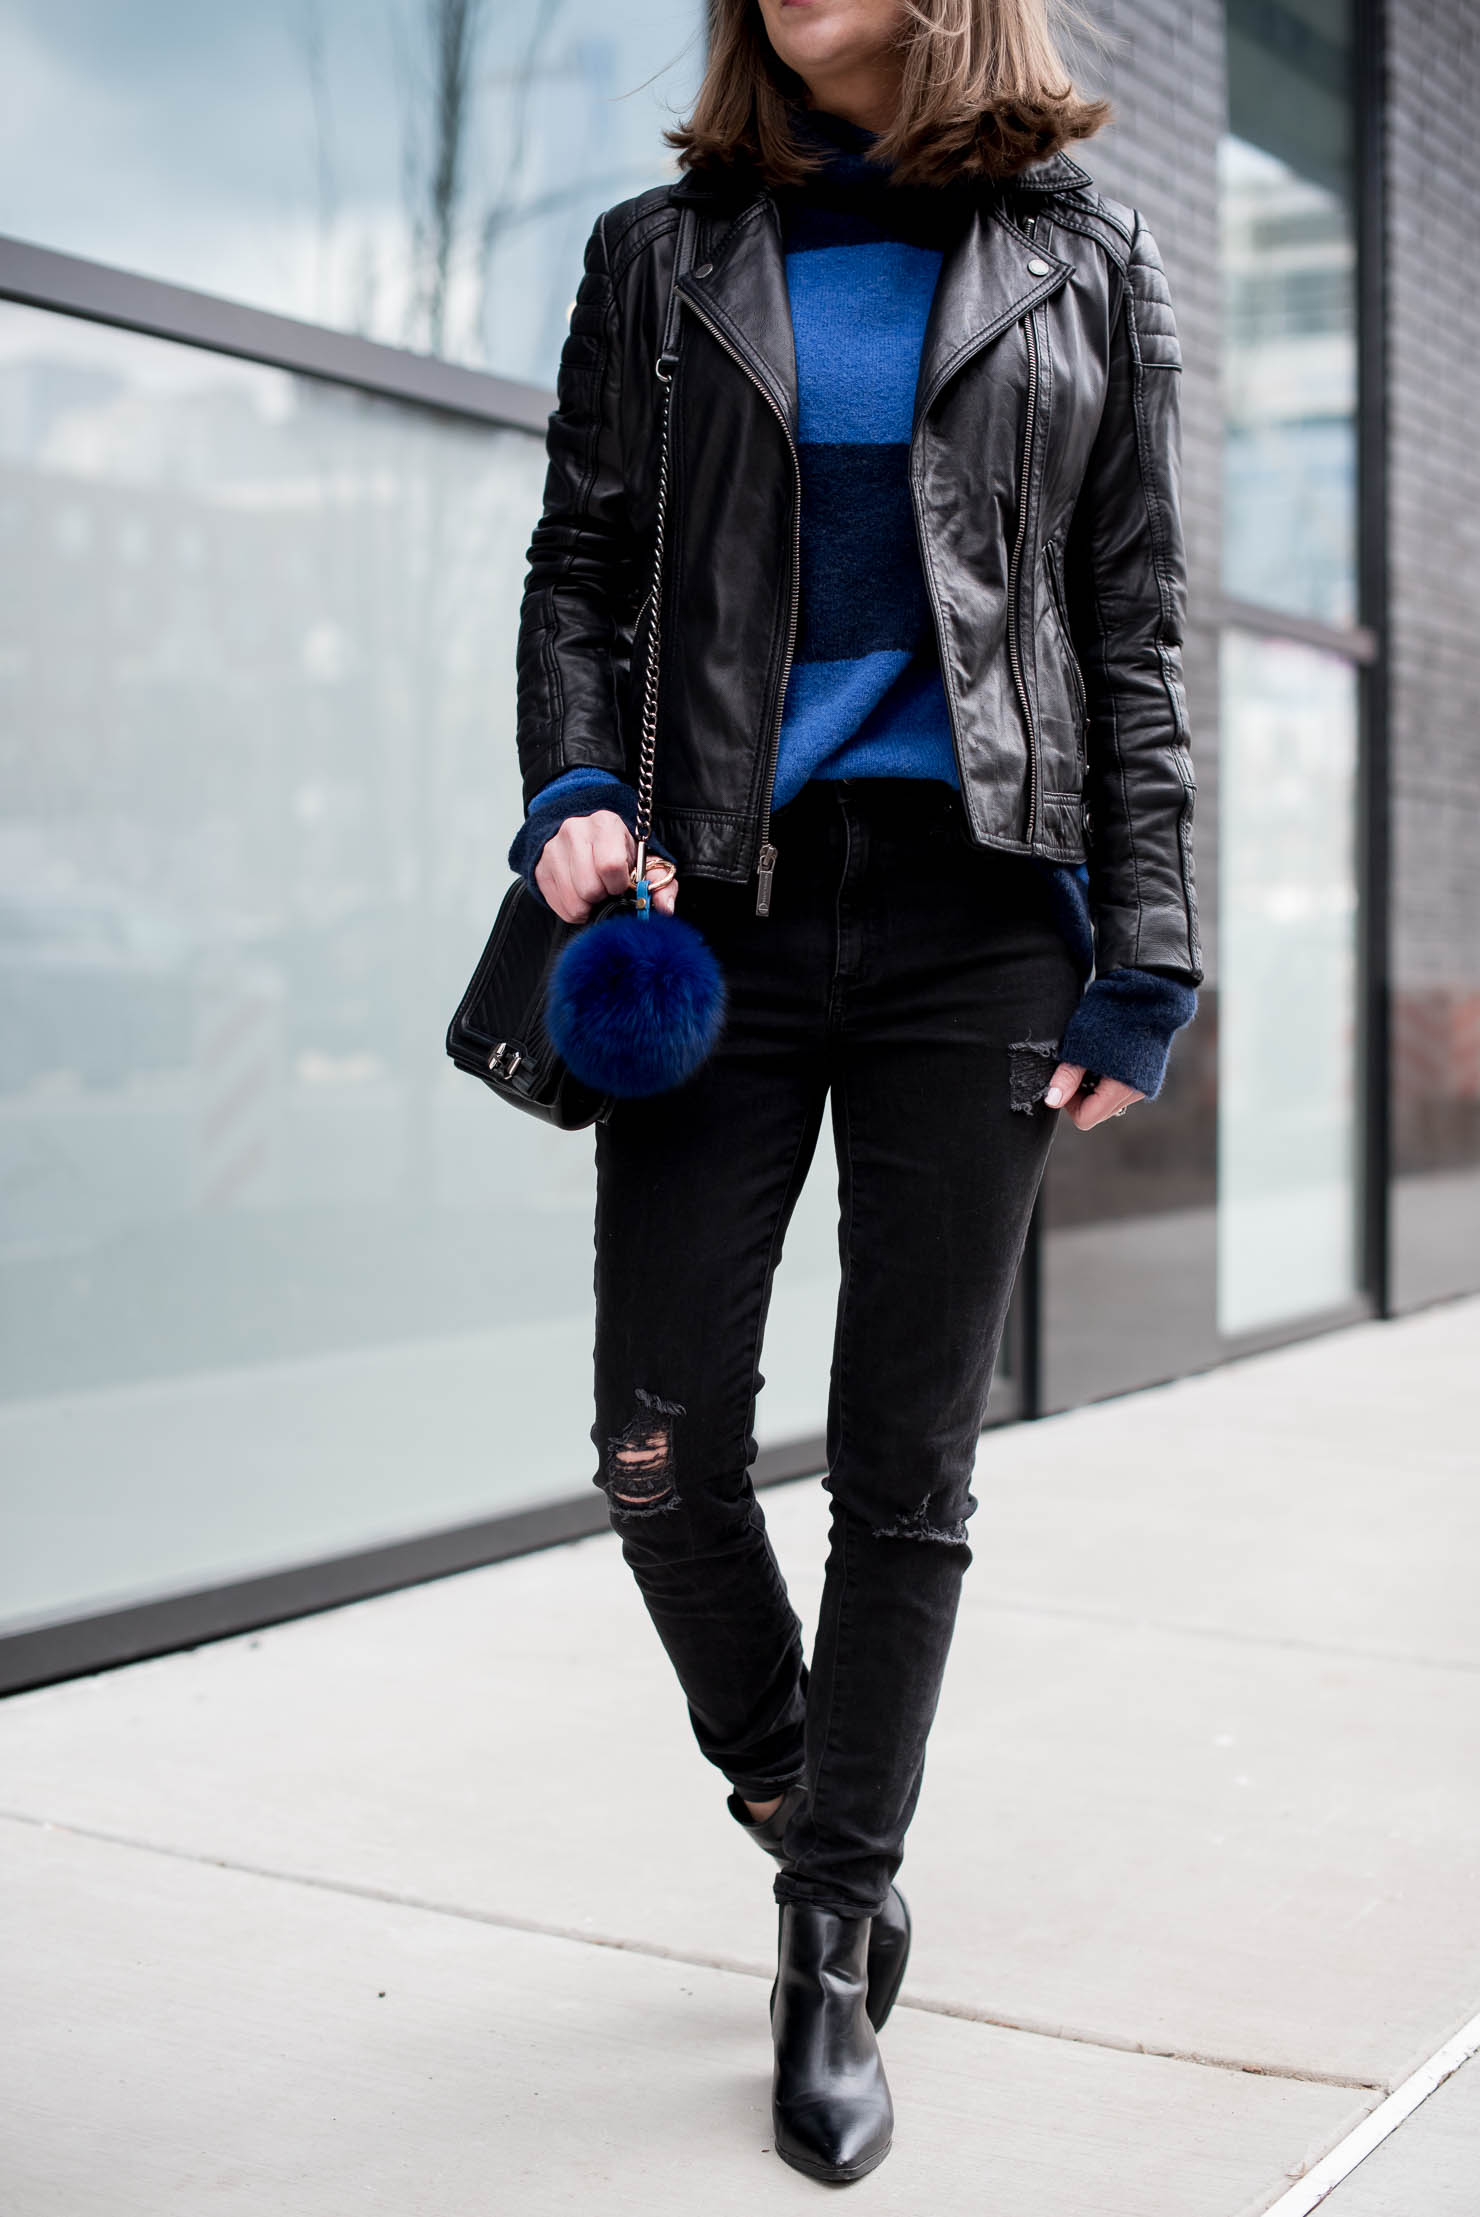 cozy spring outfit, black and blue look, styling the classic moto jacket